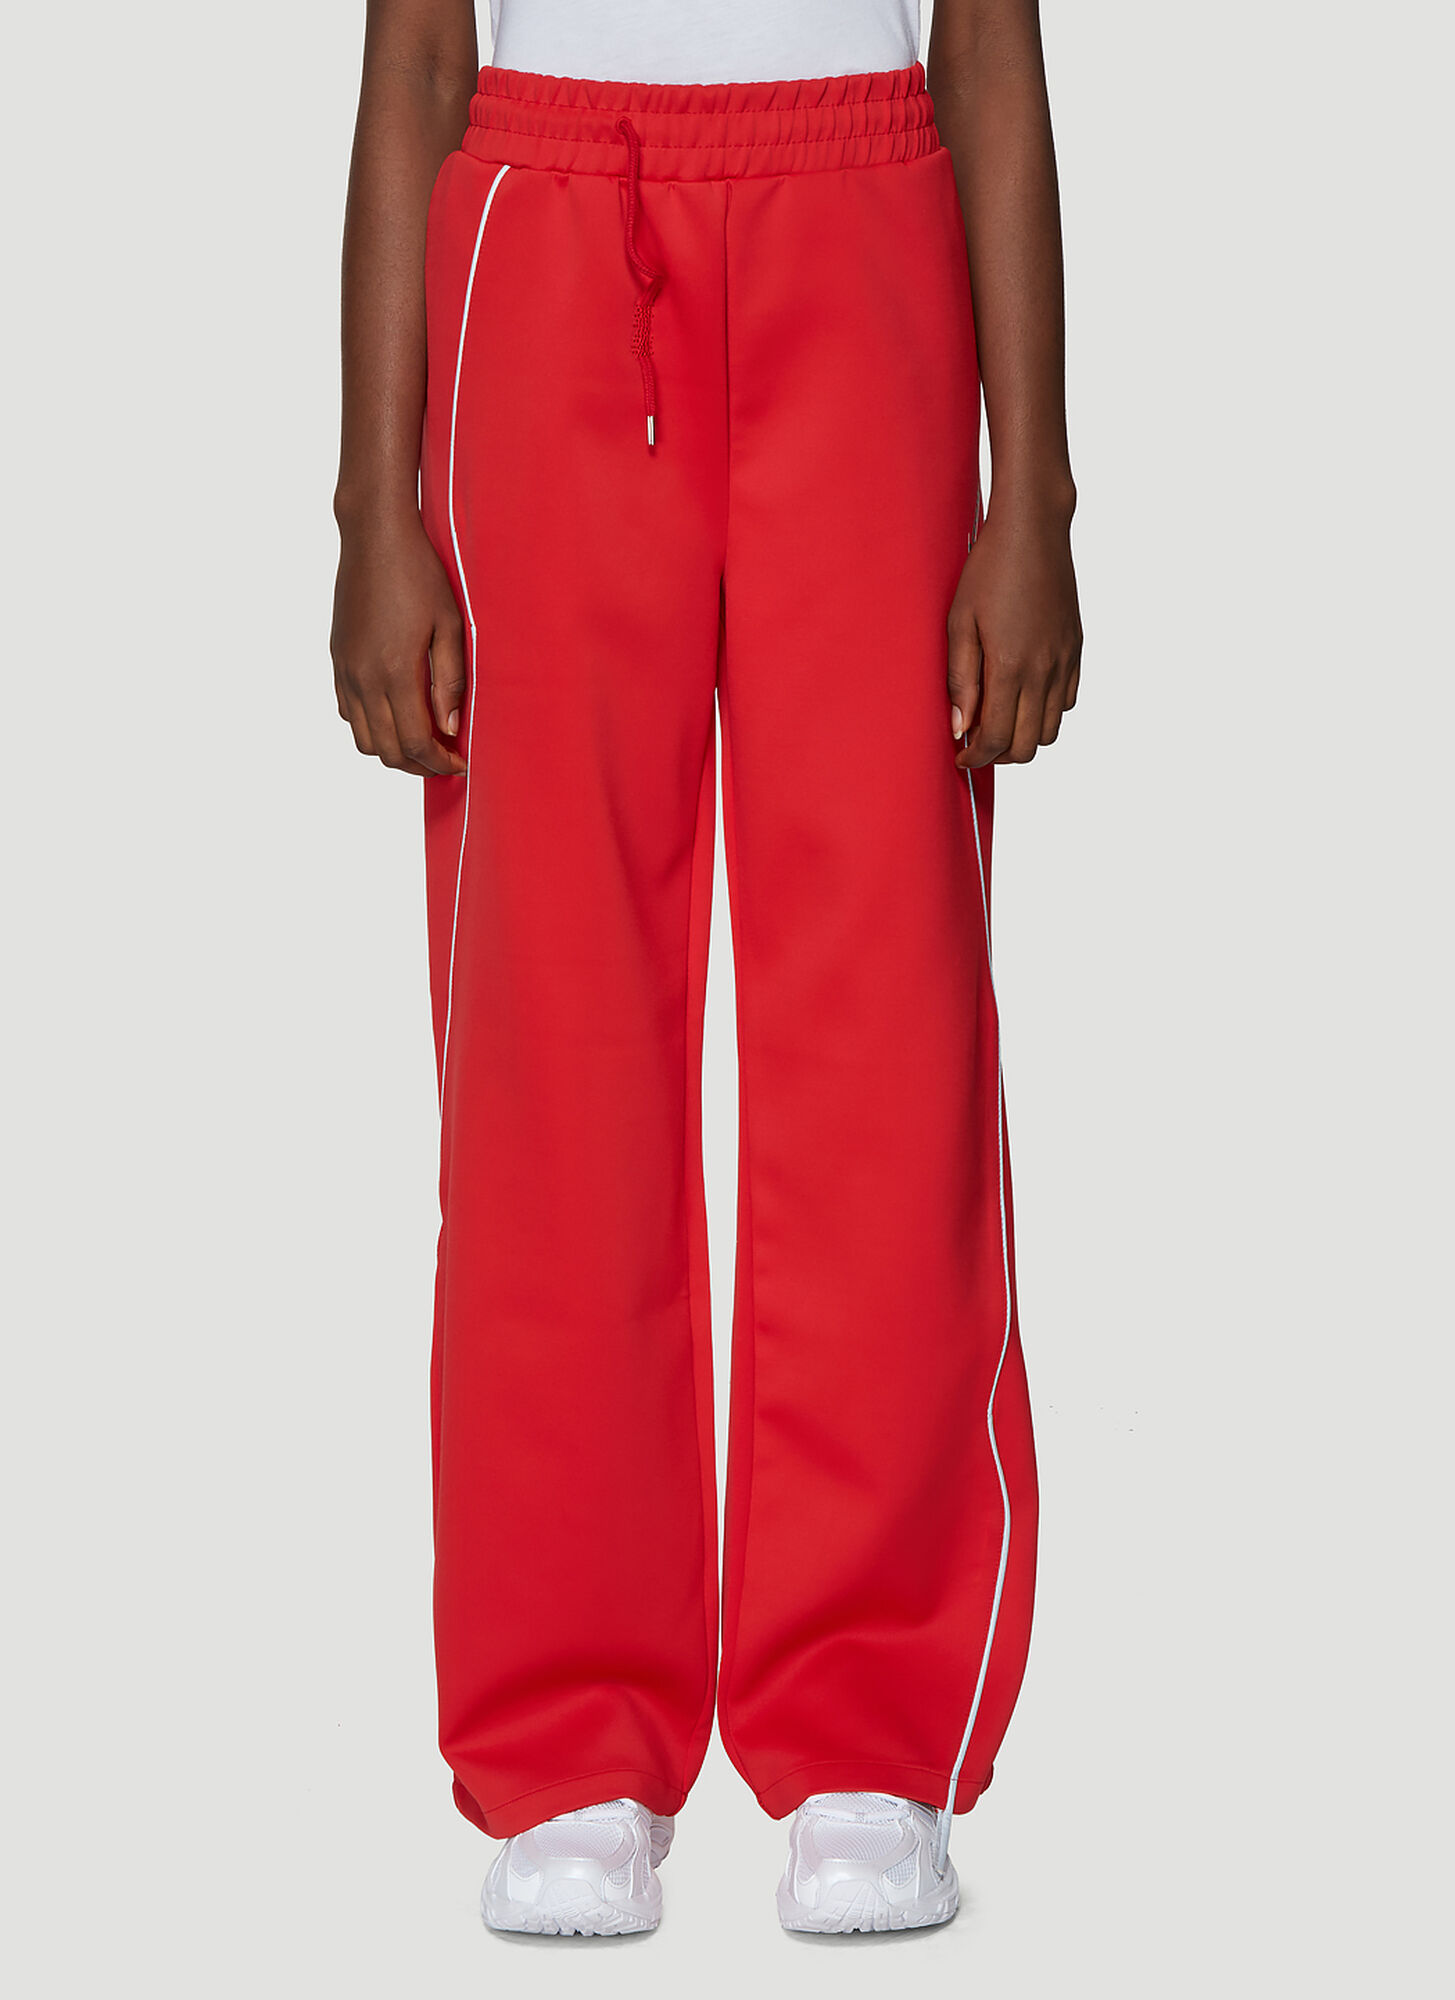 Ader Error Ade Track Pants in Red